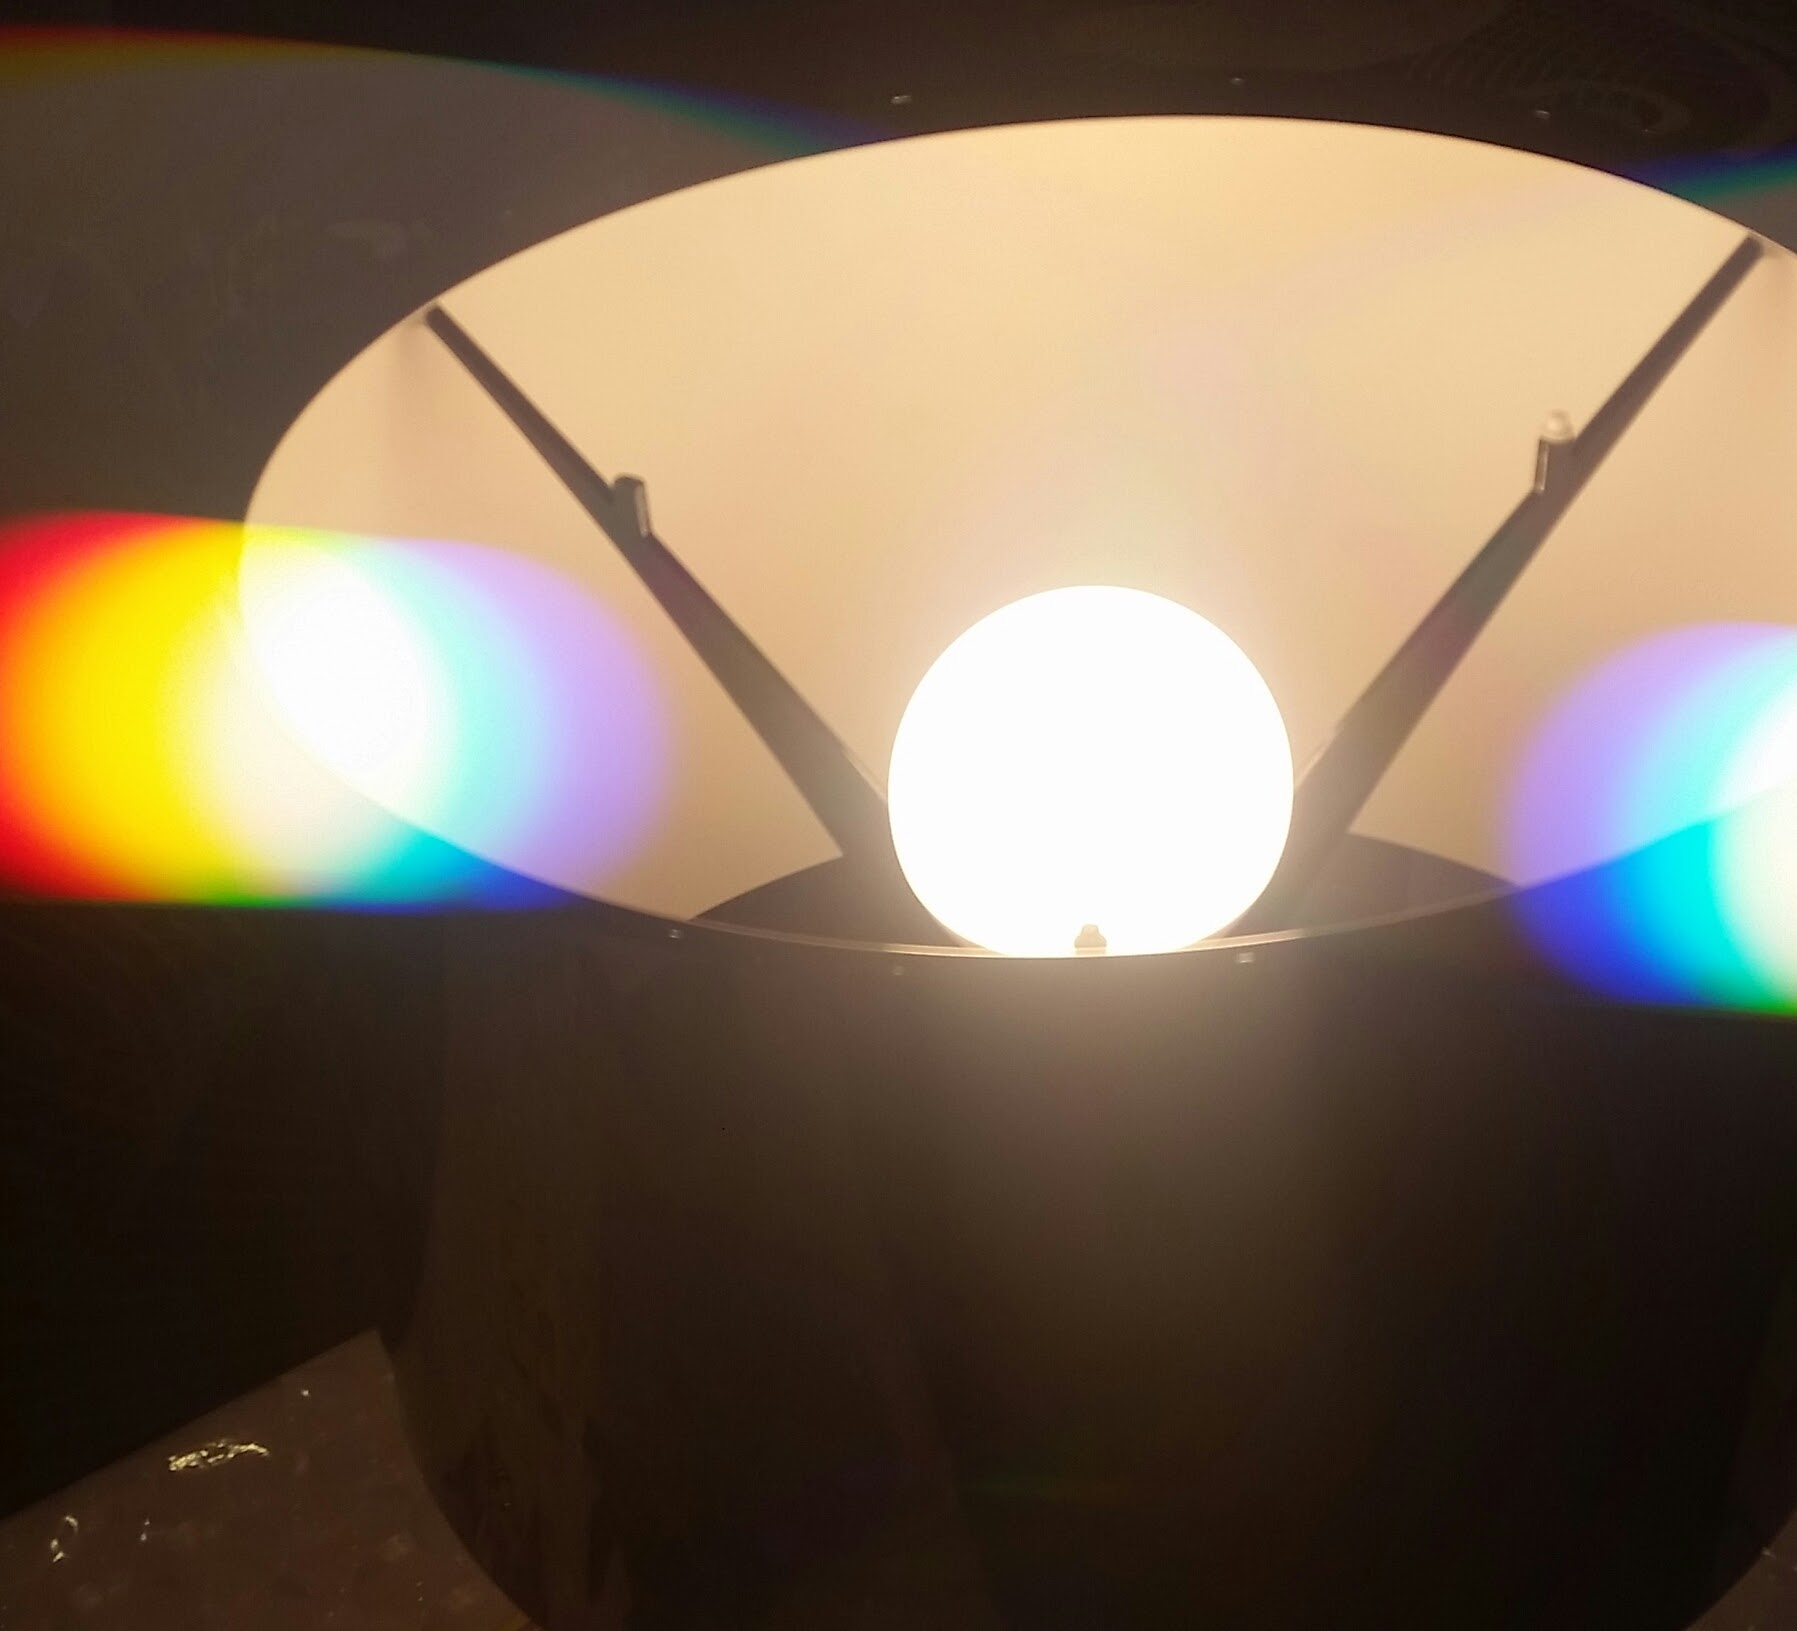 Diffraction filters split the colour in a light globe